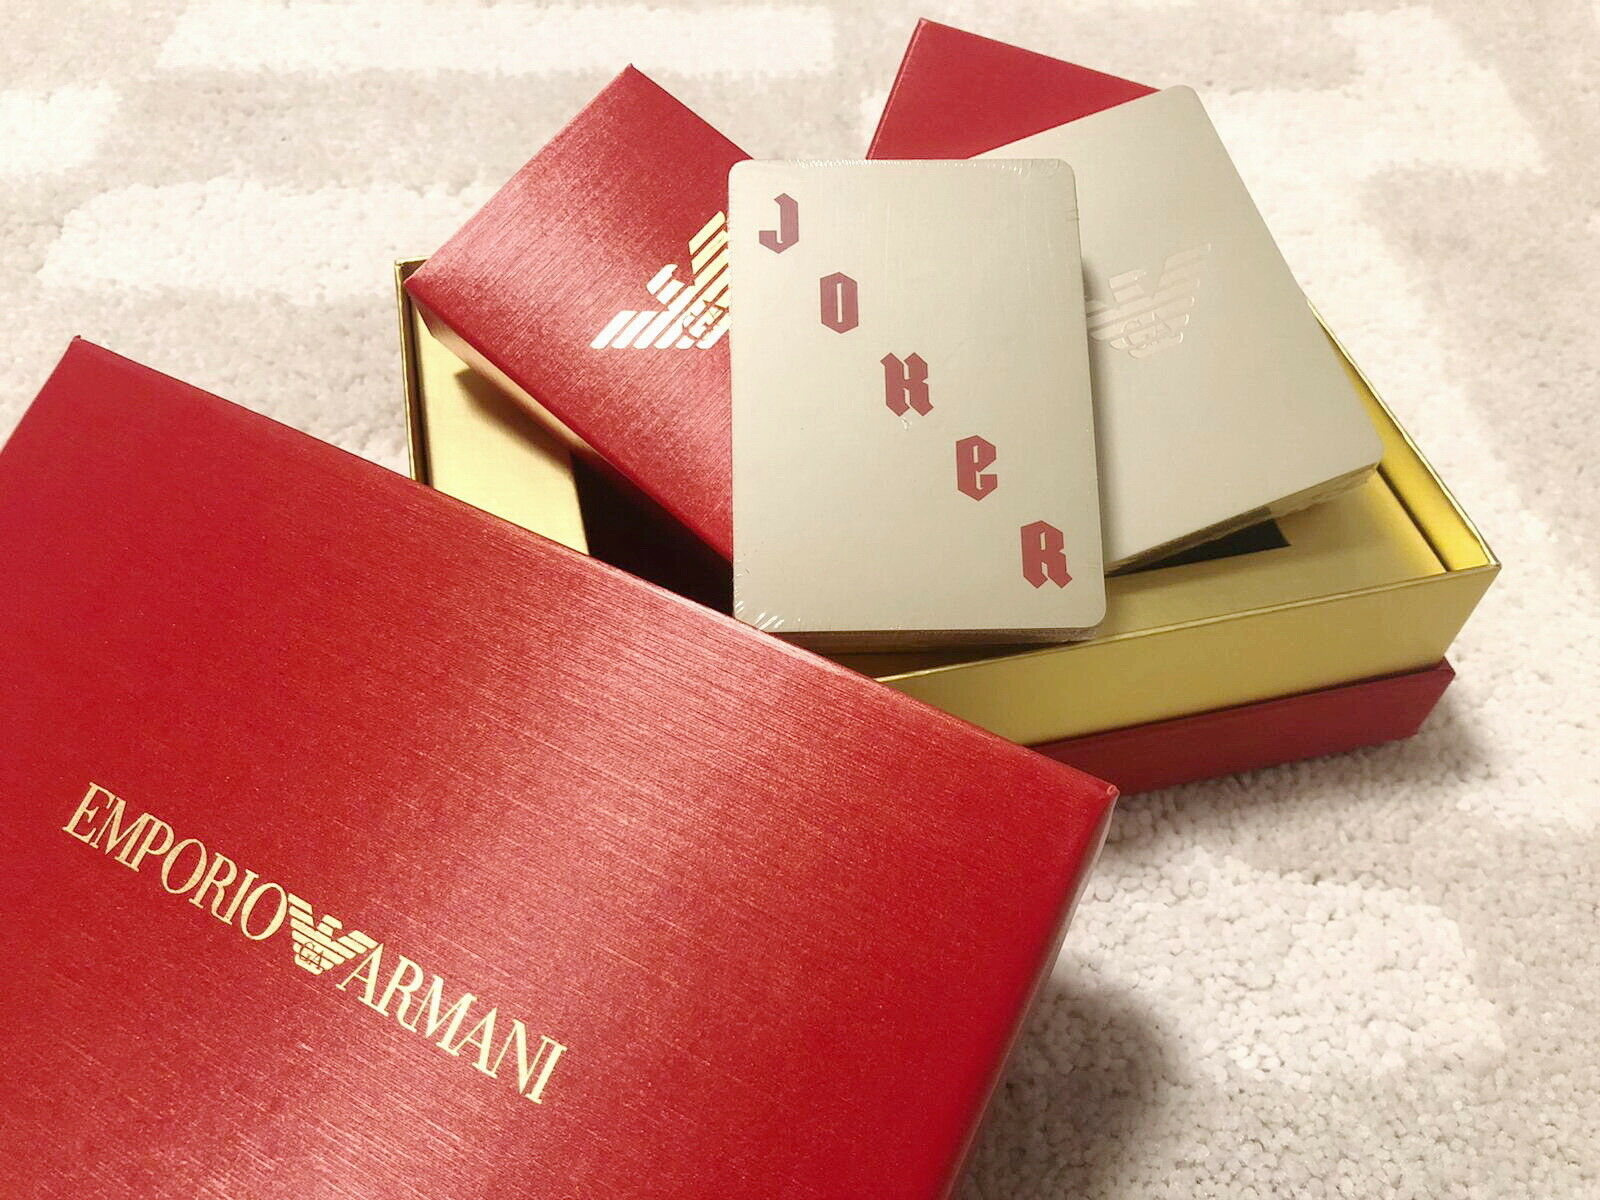 Emporio Armani playing card poker for blazer suit wallet backpack holder clutch